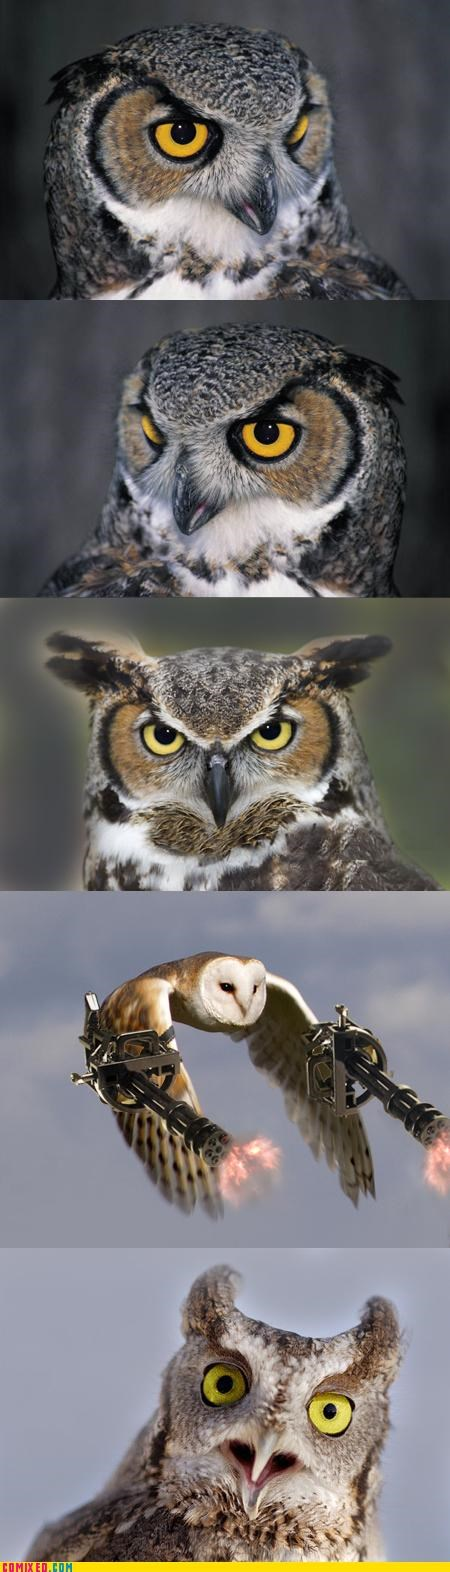 animals awesome brutal destruction guns hybrid nature Owl